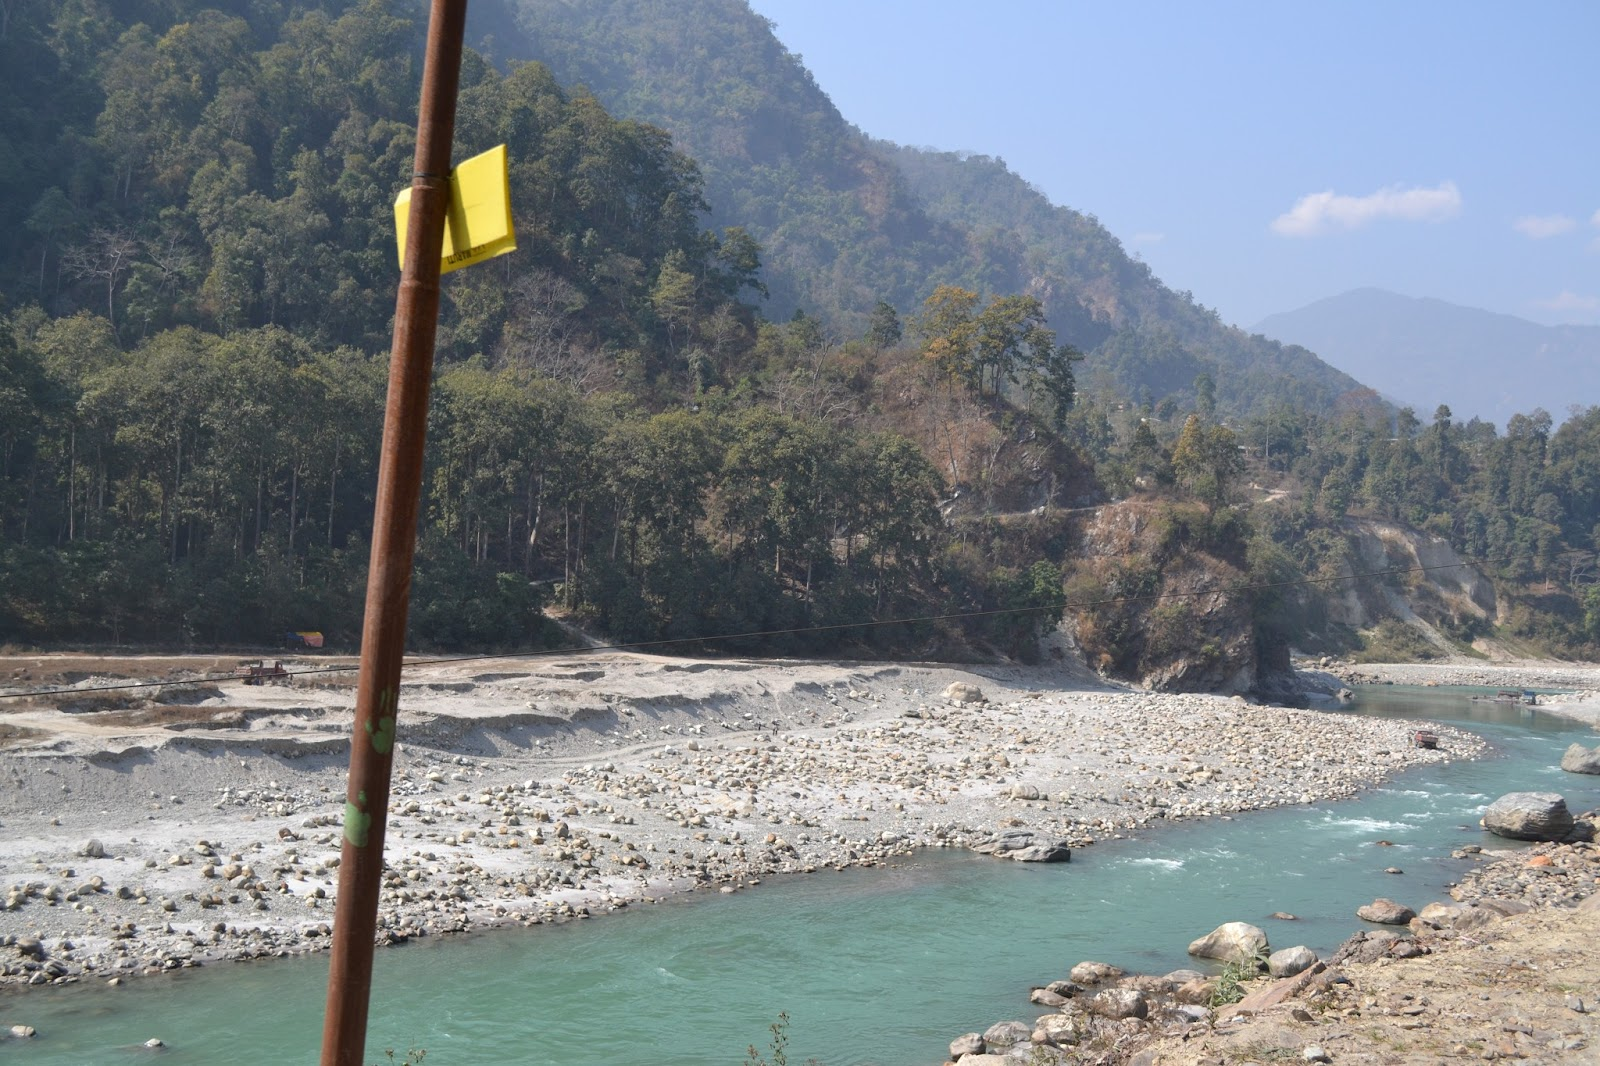 Tista river , on the way to gangtok